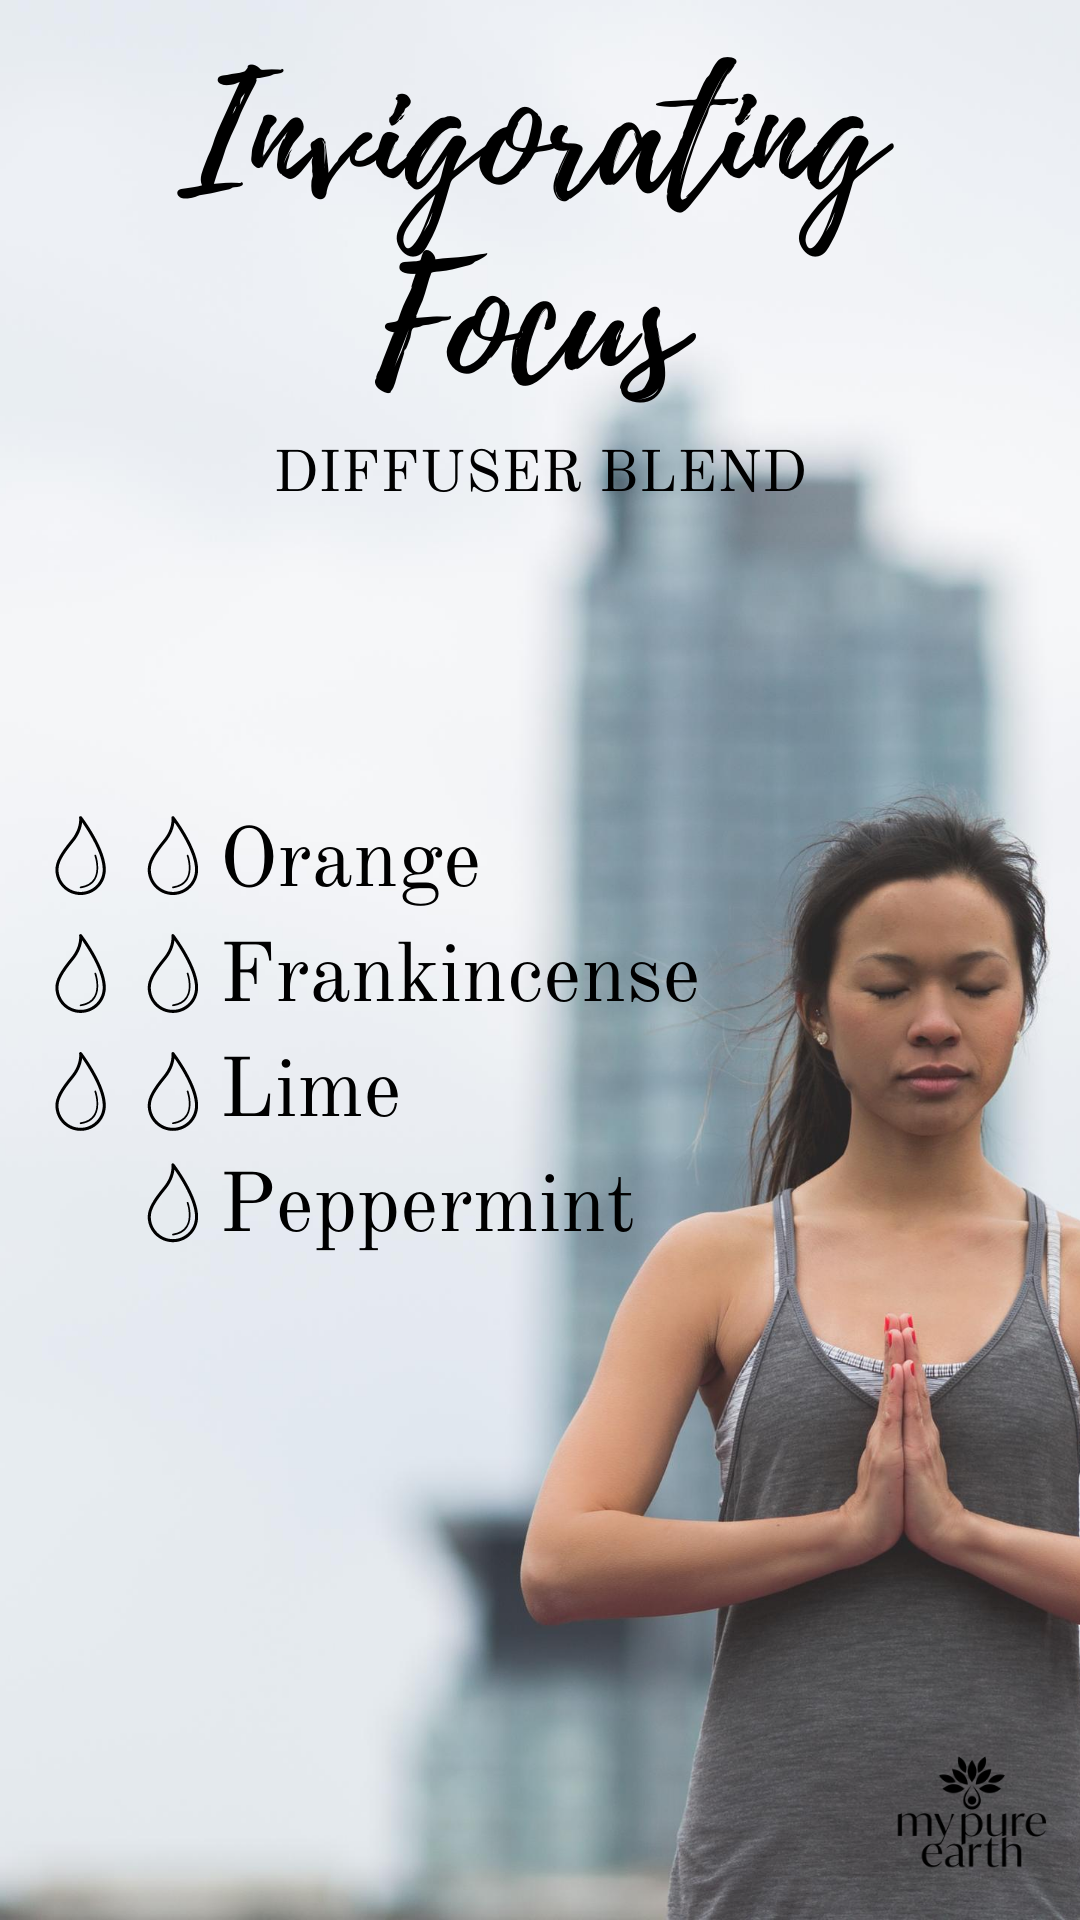 A great blend for when you need to be energised and focus at the same time. This is one of our favourite blends to use during morning yoga sessions, or to diffuse around our home and office to start our day.  #mypureearth #diffuserblend #startyourdayright #anxietyrelief #weekdayvibes #focusedonmygoals #sustainablymade #sustainablysourced #sustainablyfarmed #ethicallymade #ethicallysourced #essentialoilsrock #singaporebusiness #supportsmallbusiness #supportlocal #malaysiaboleh #malaysiafood